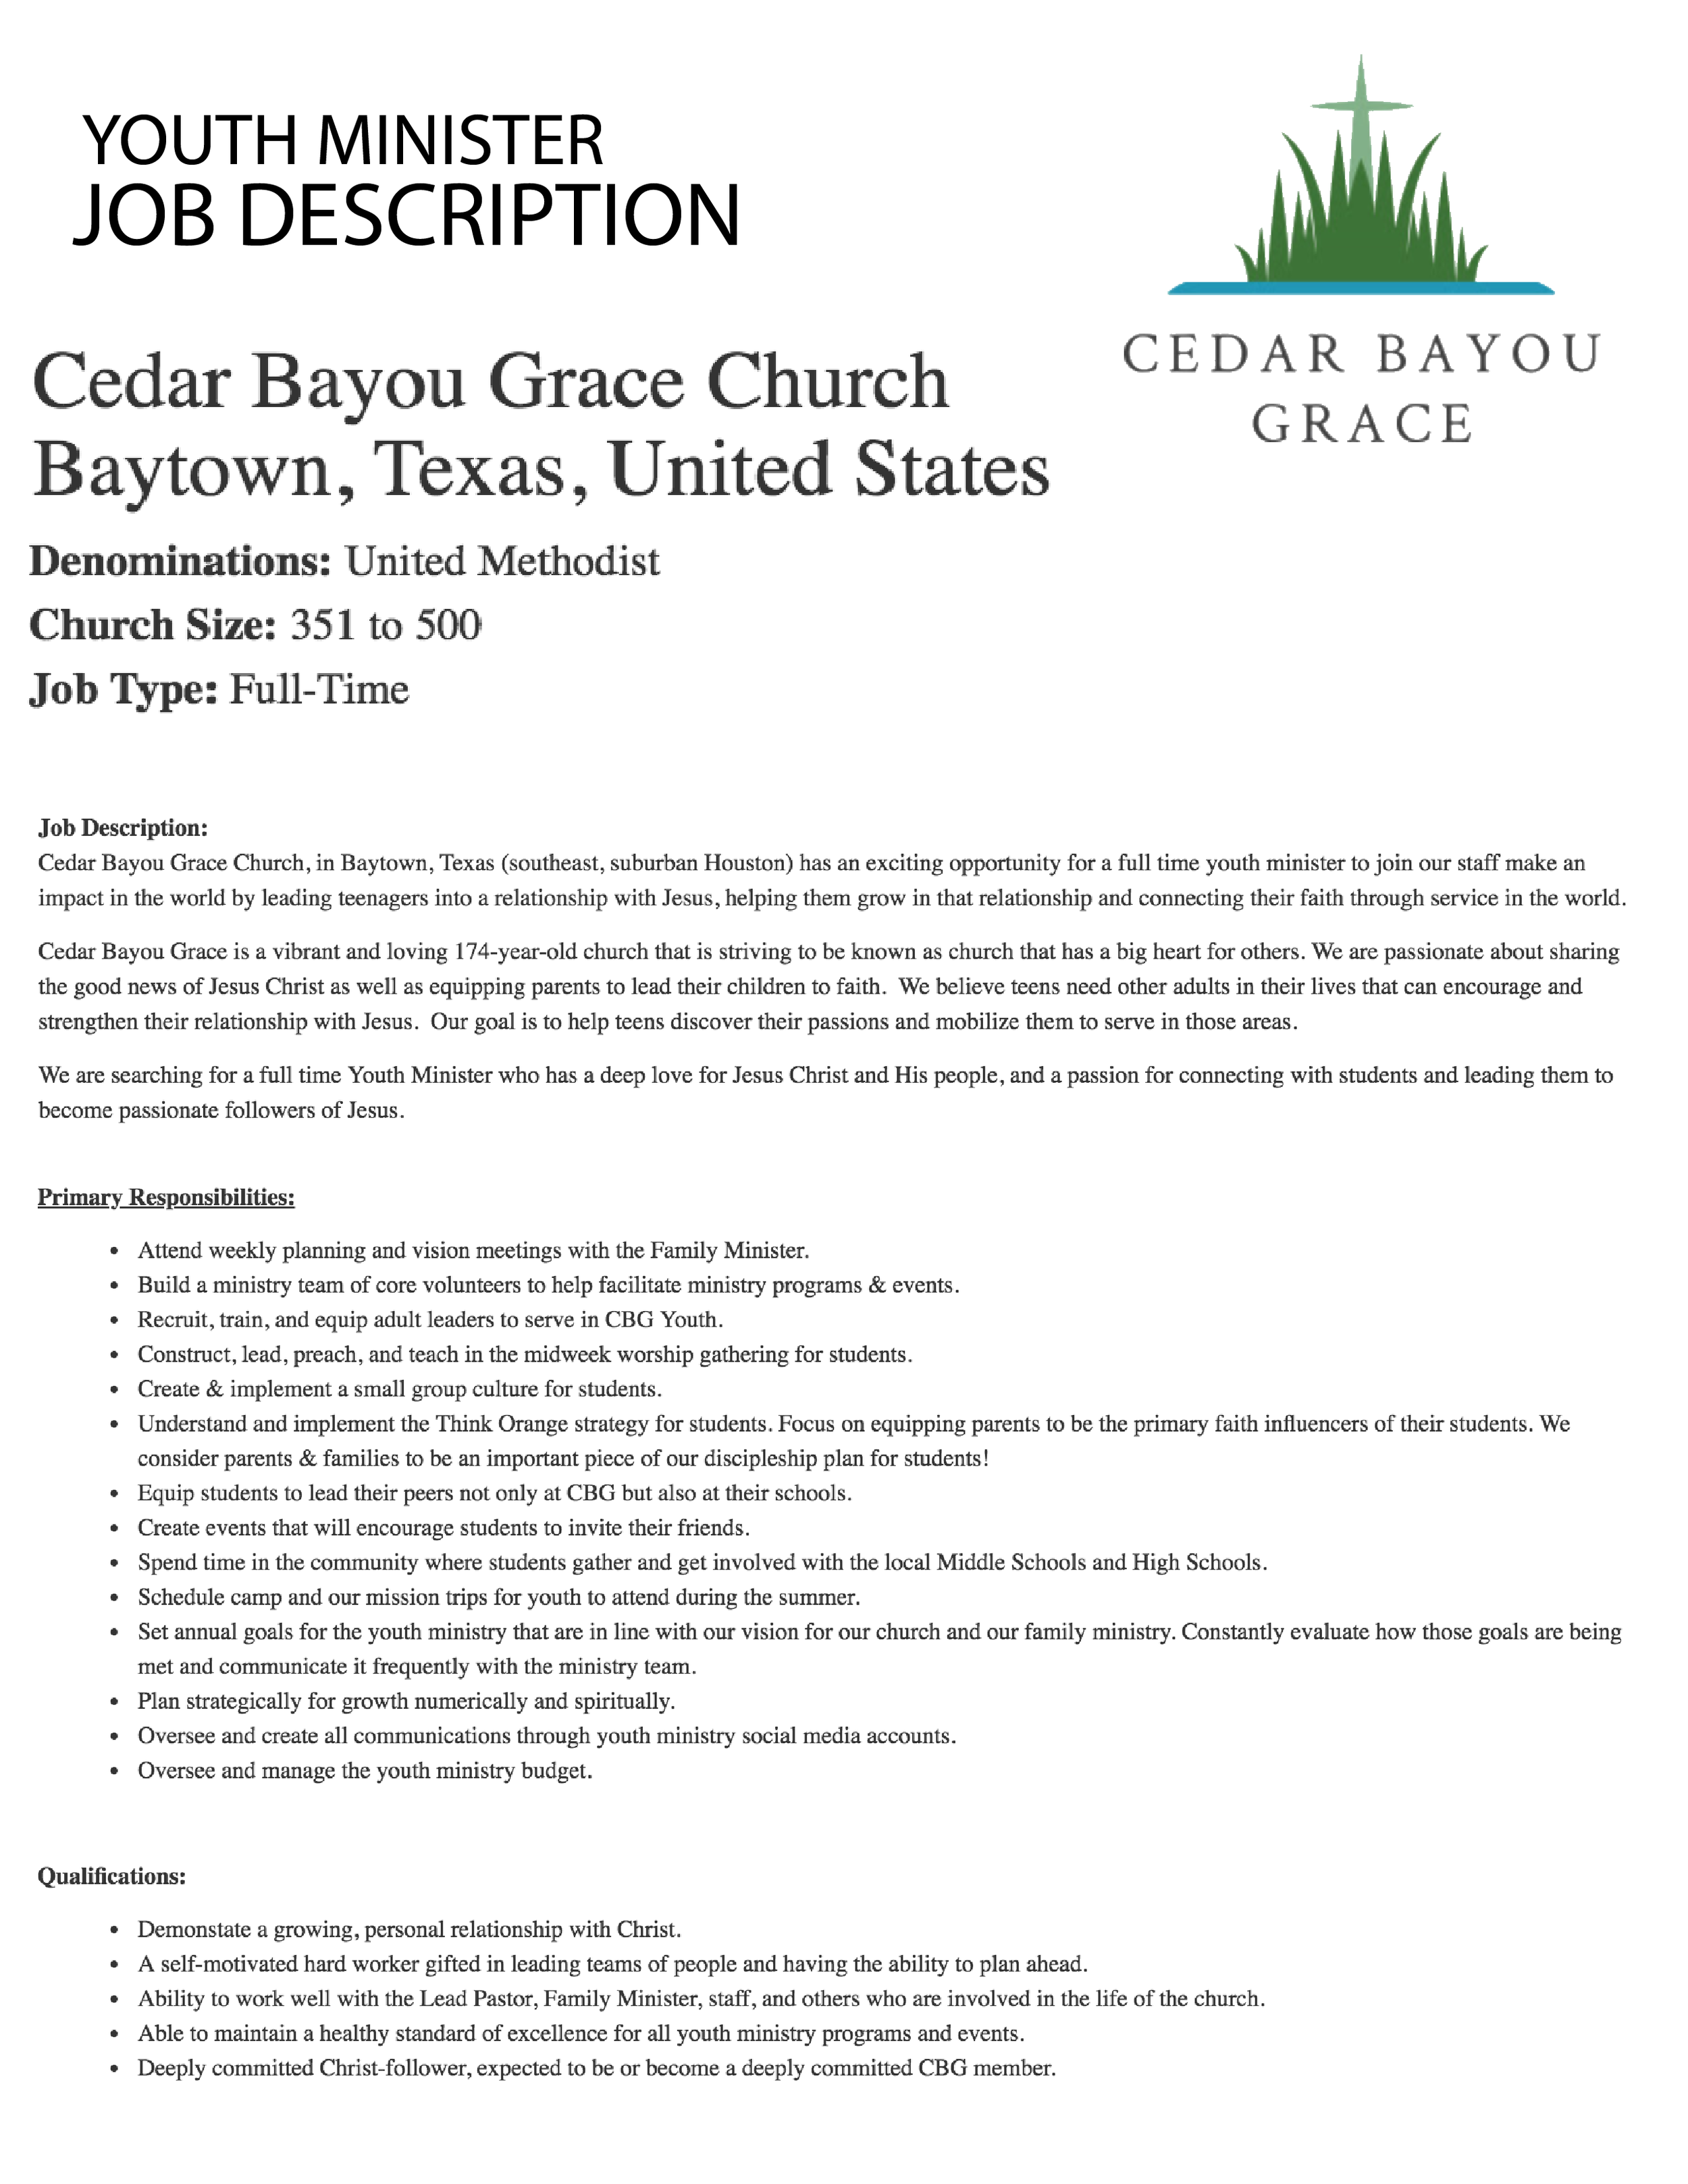 CBGUMC Youth Minister Job Description-01.png